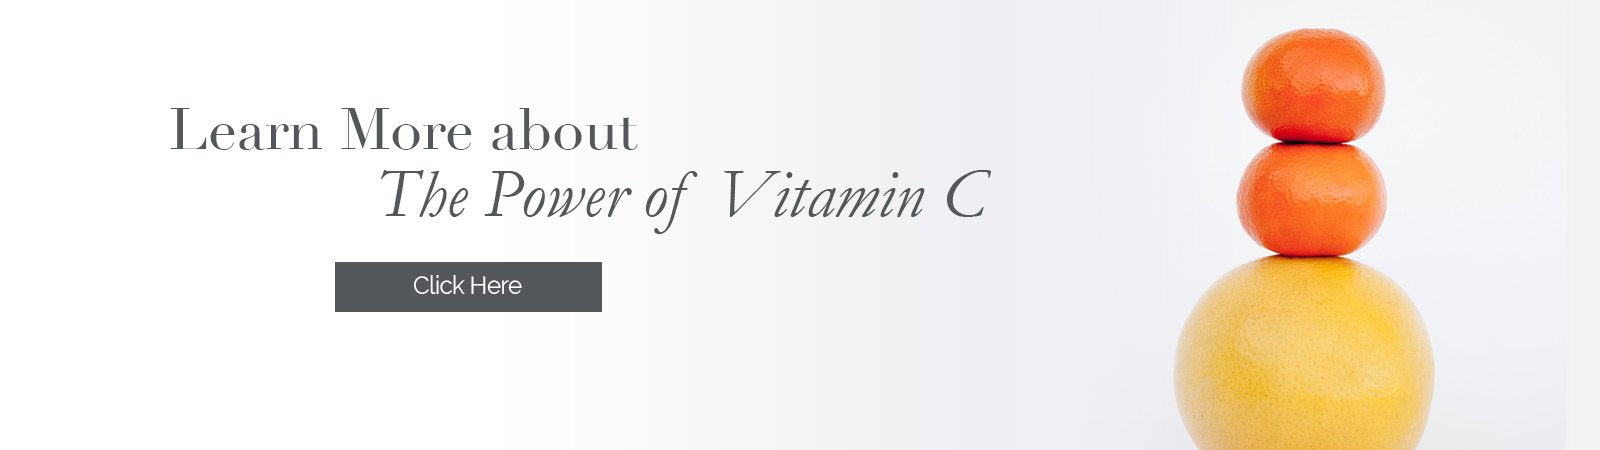 The Power of Vitamin C in Skin Care